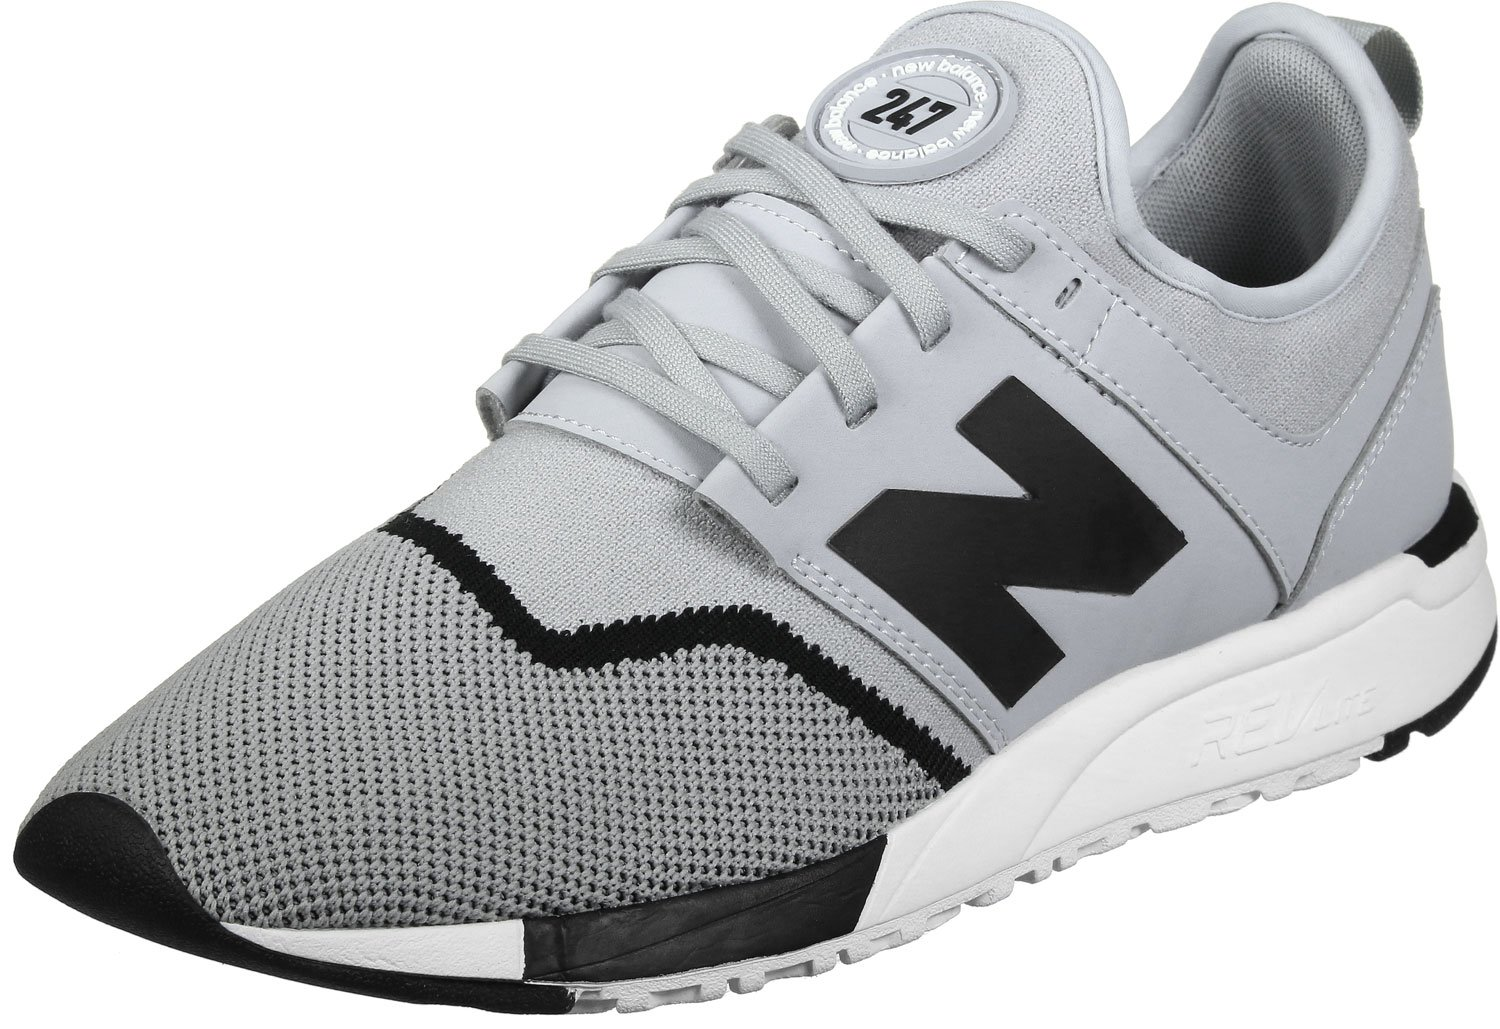 quality design 429e5 10d07 New Balance Herren 247 Classic Mesh Sneaker 40 D EU Grey Black - pemicon.de